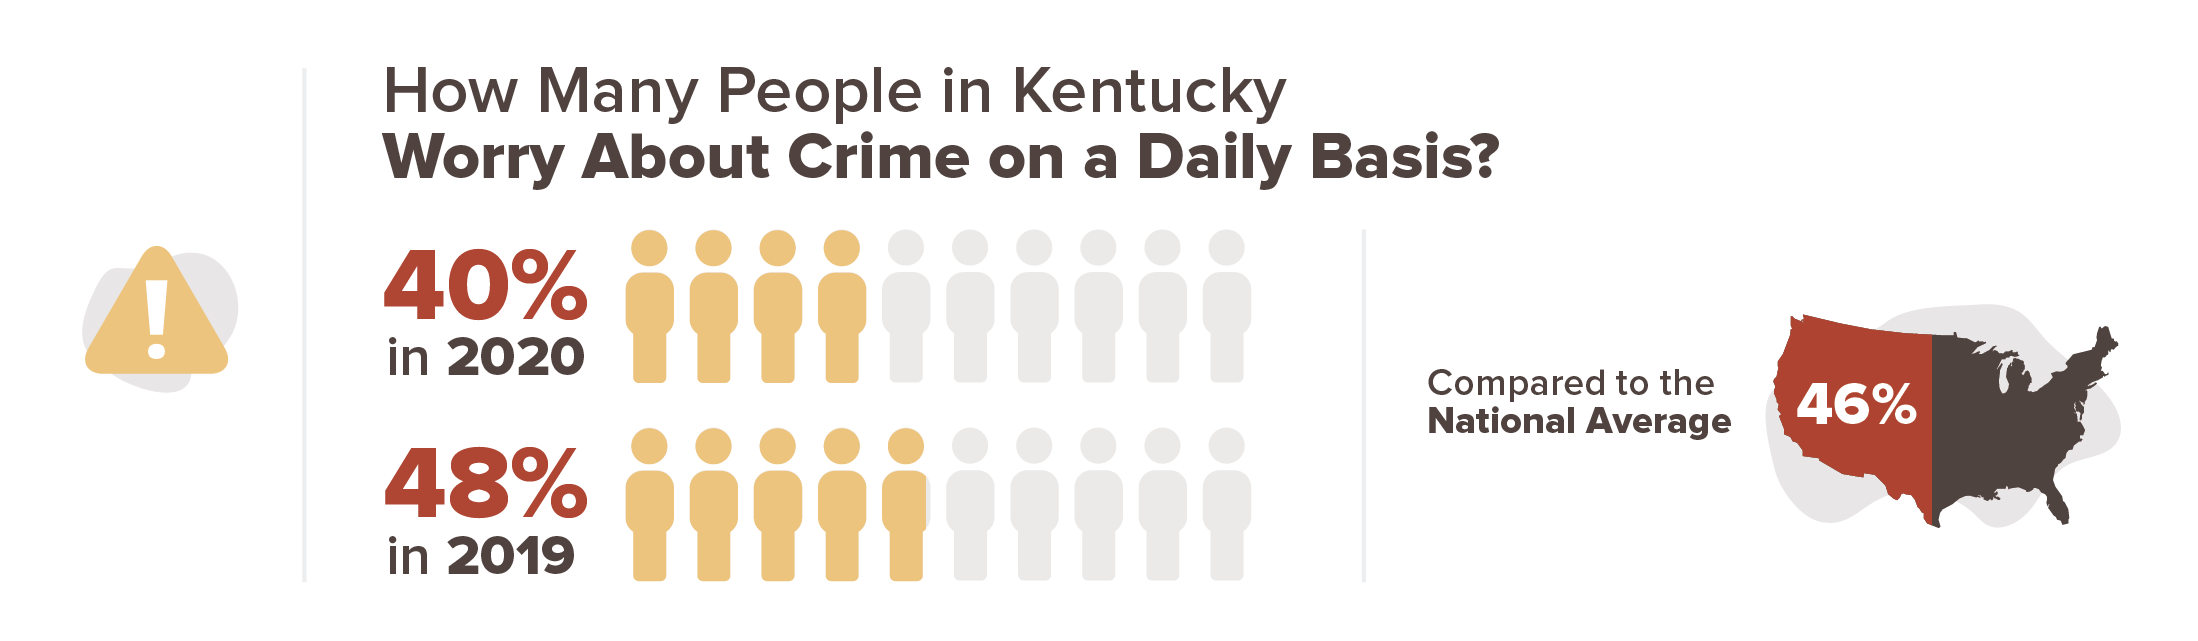 40% of people in Kentucky worry about crime on a daily basis in 2020 compared to 48% in 2019.